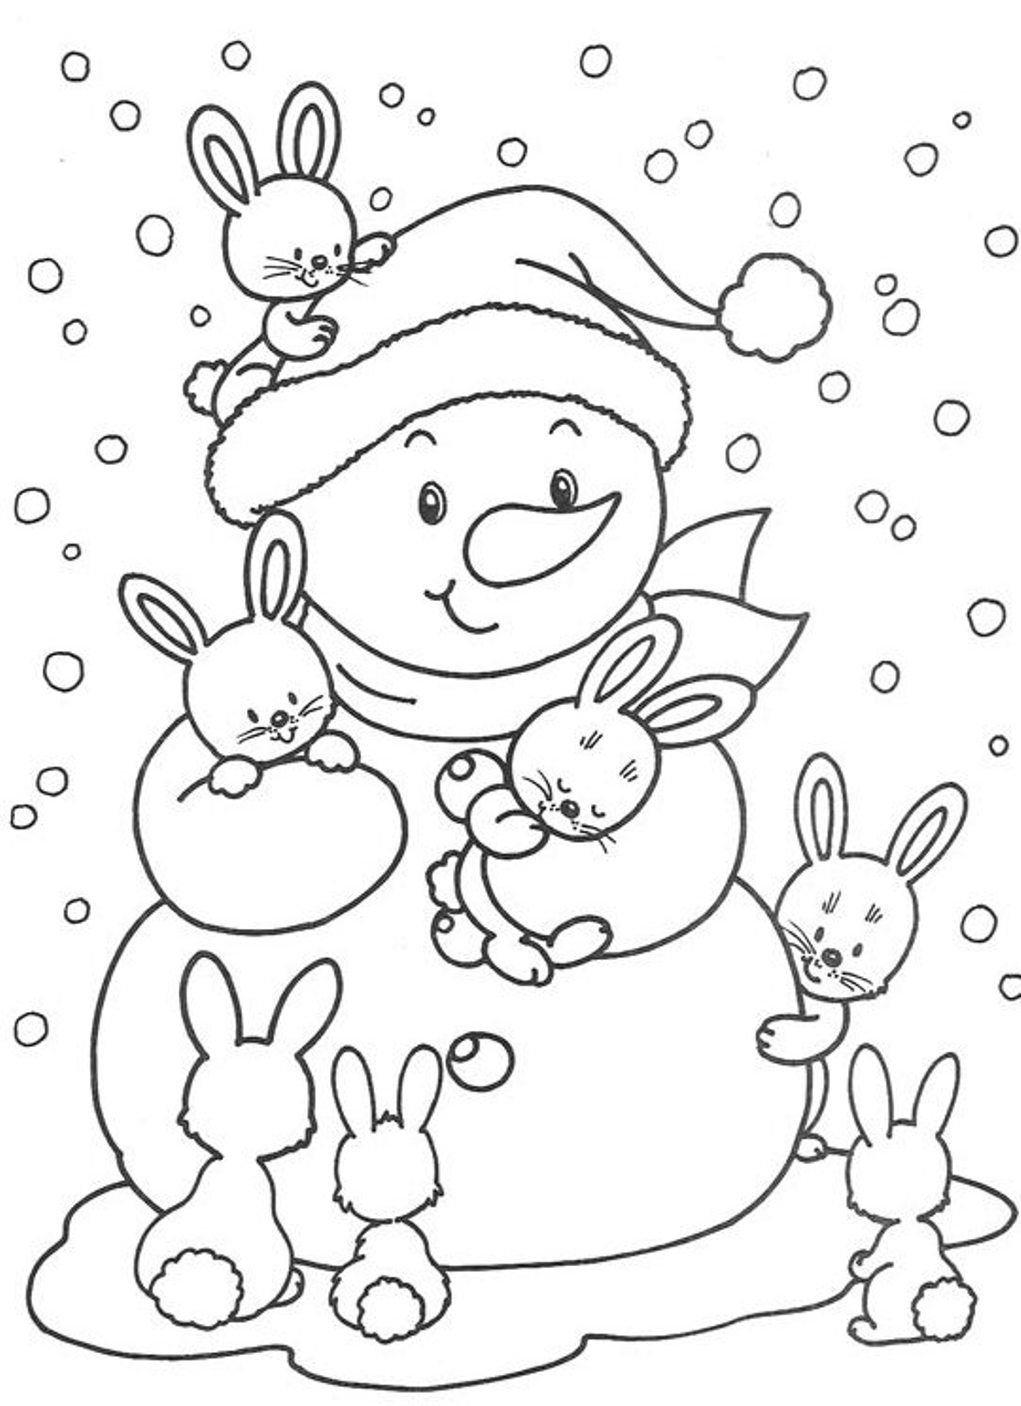 Micky Maus Weihnachts Ausmalbilder : Winter Coloring Pages 02 School Pinterest Ausmalbilder